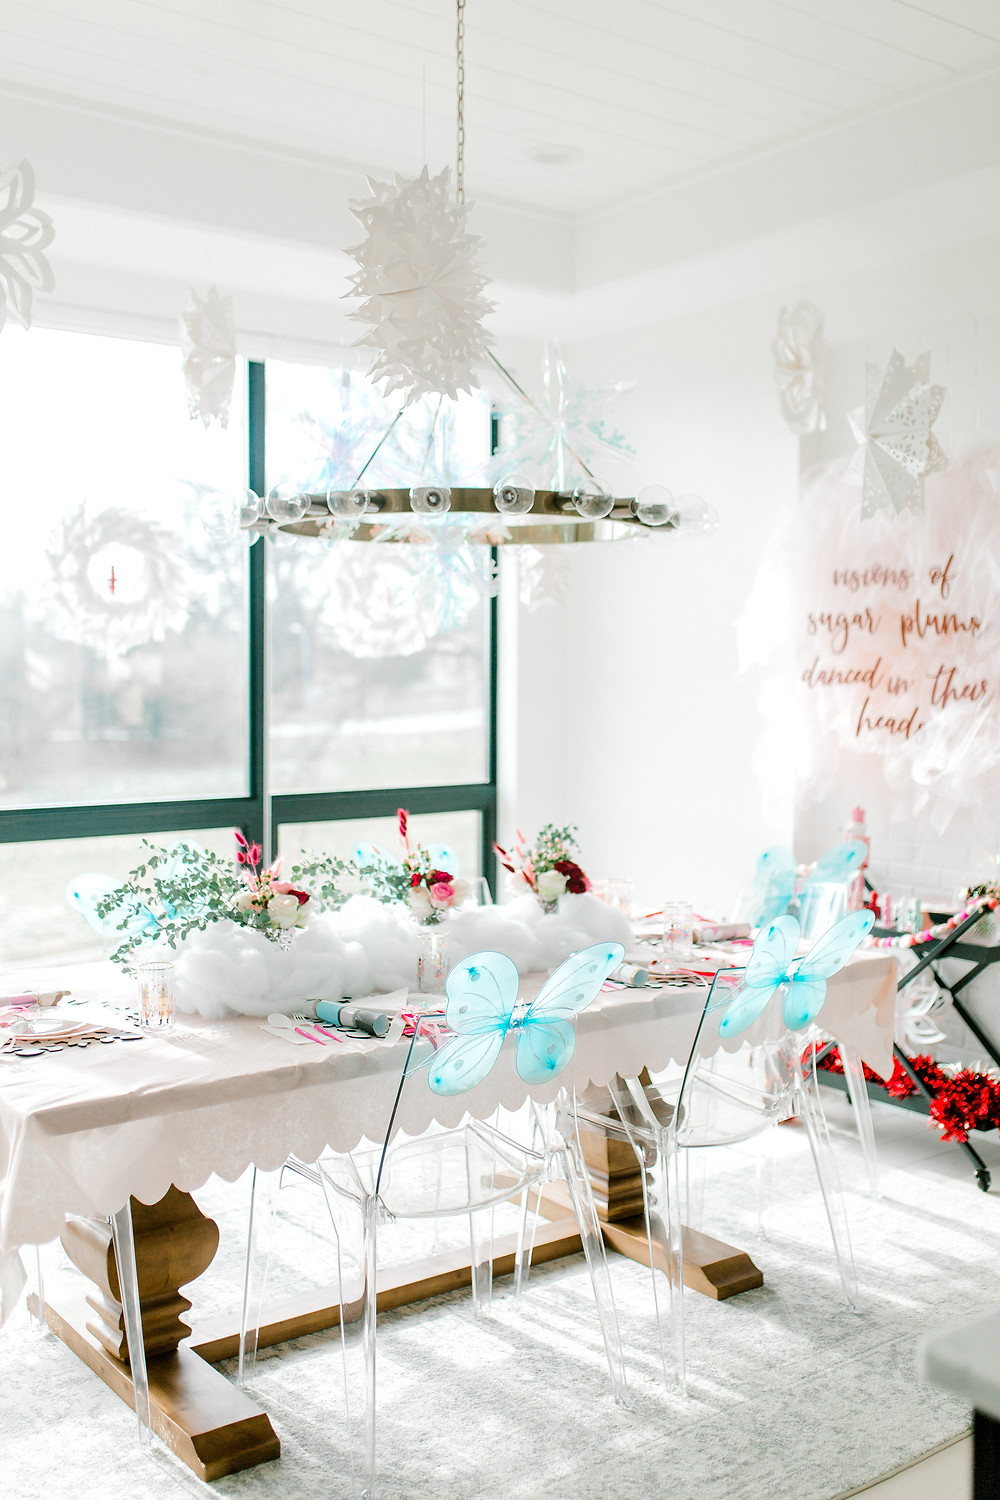 A sugar plum nutcracker birthday party with hanging paper and clear snowflakes and blue butterfly wings with floral centrepieces.